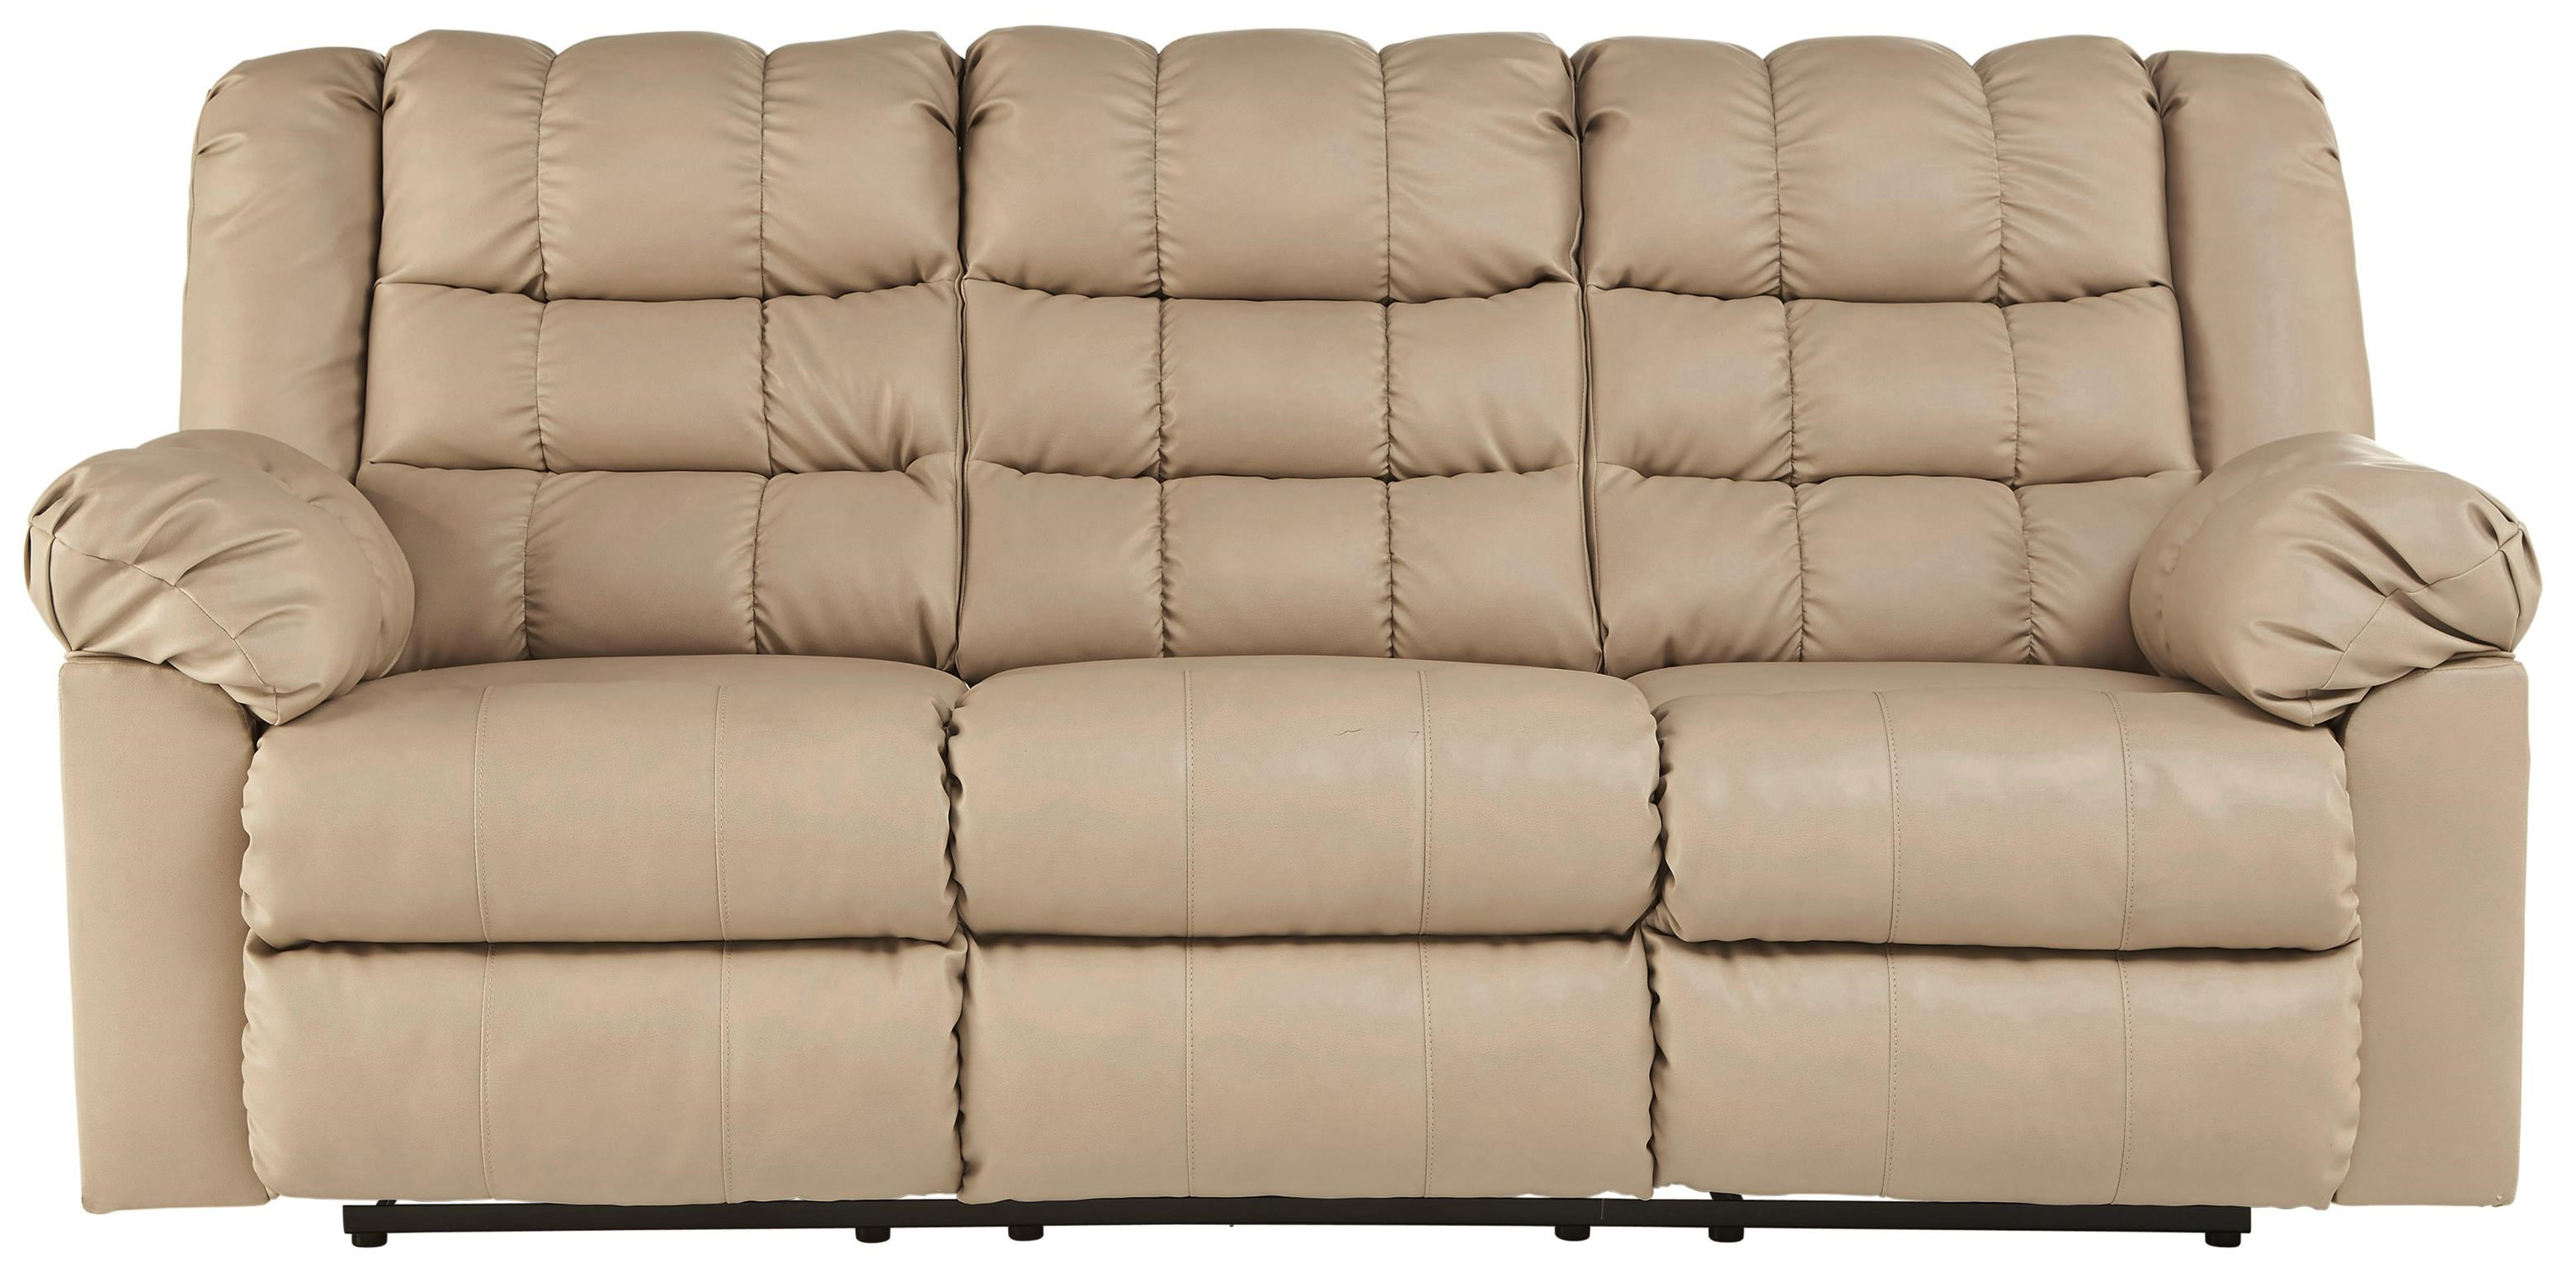 mage sofa 10 best beds uk durablend reclining benchcraft by ashley